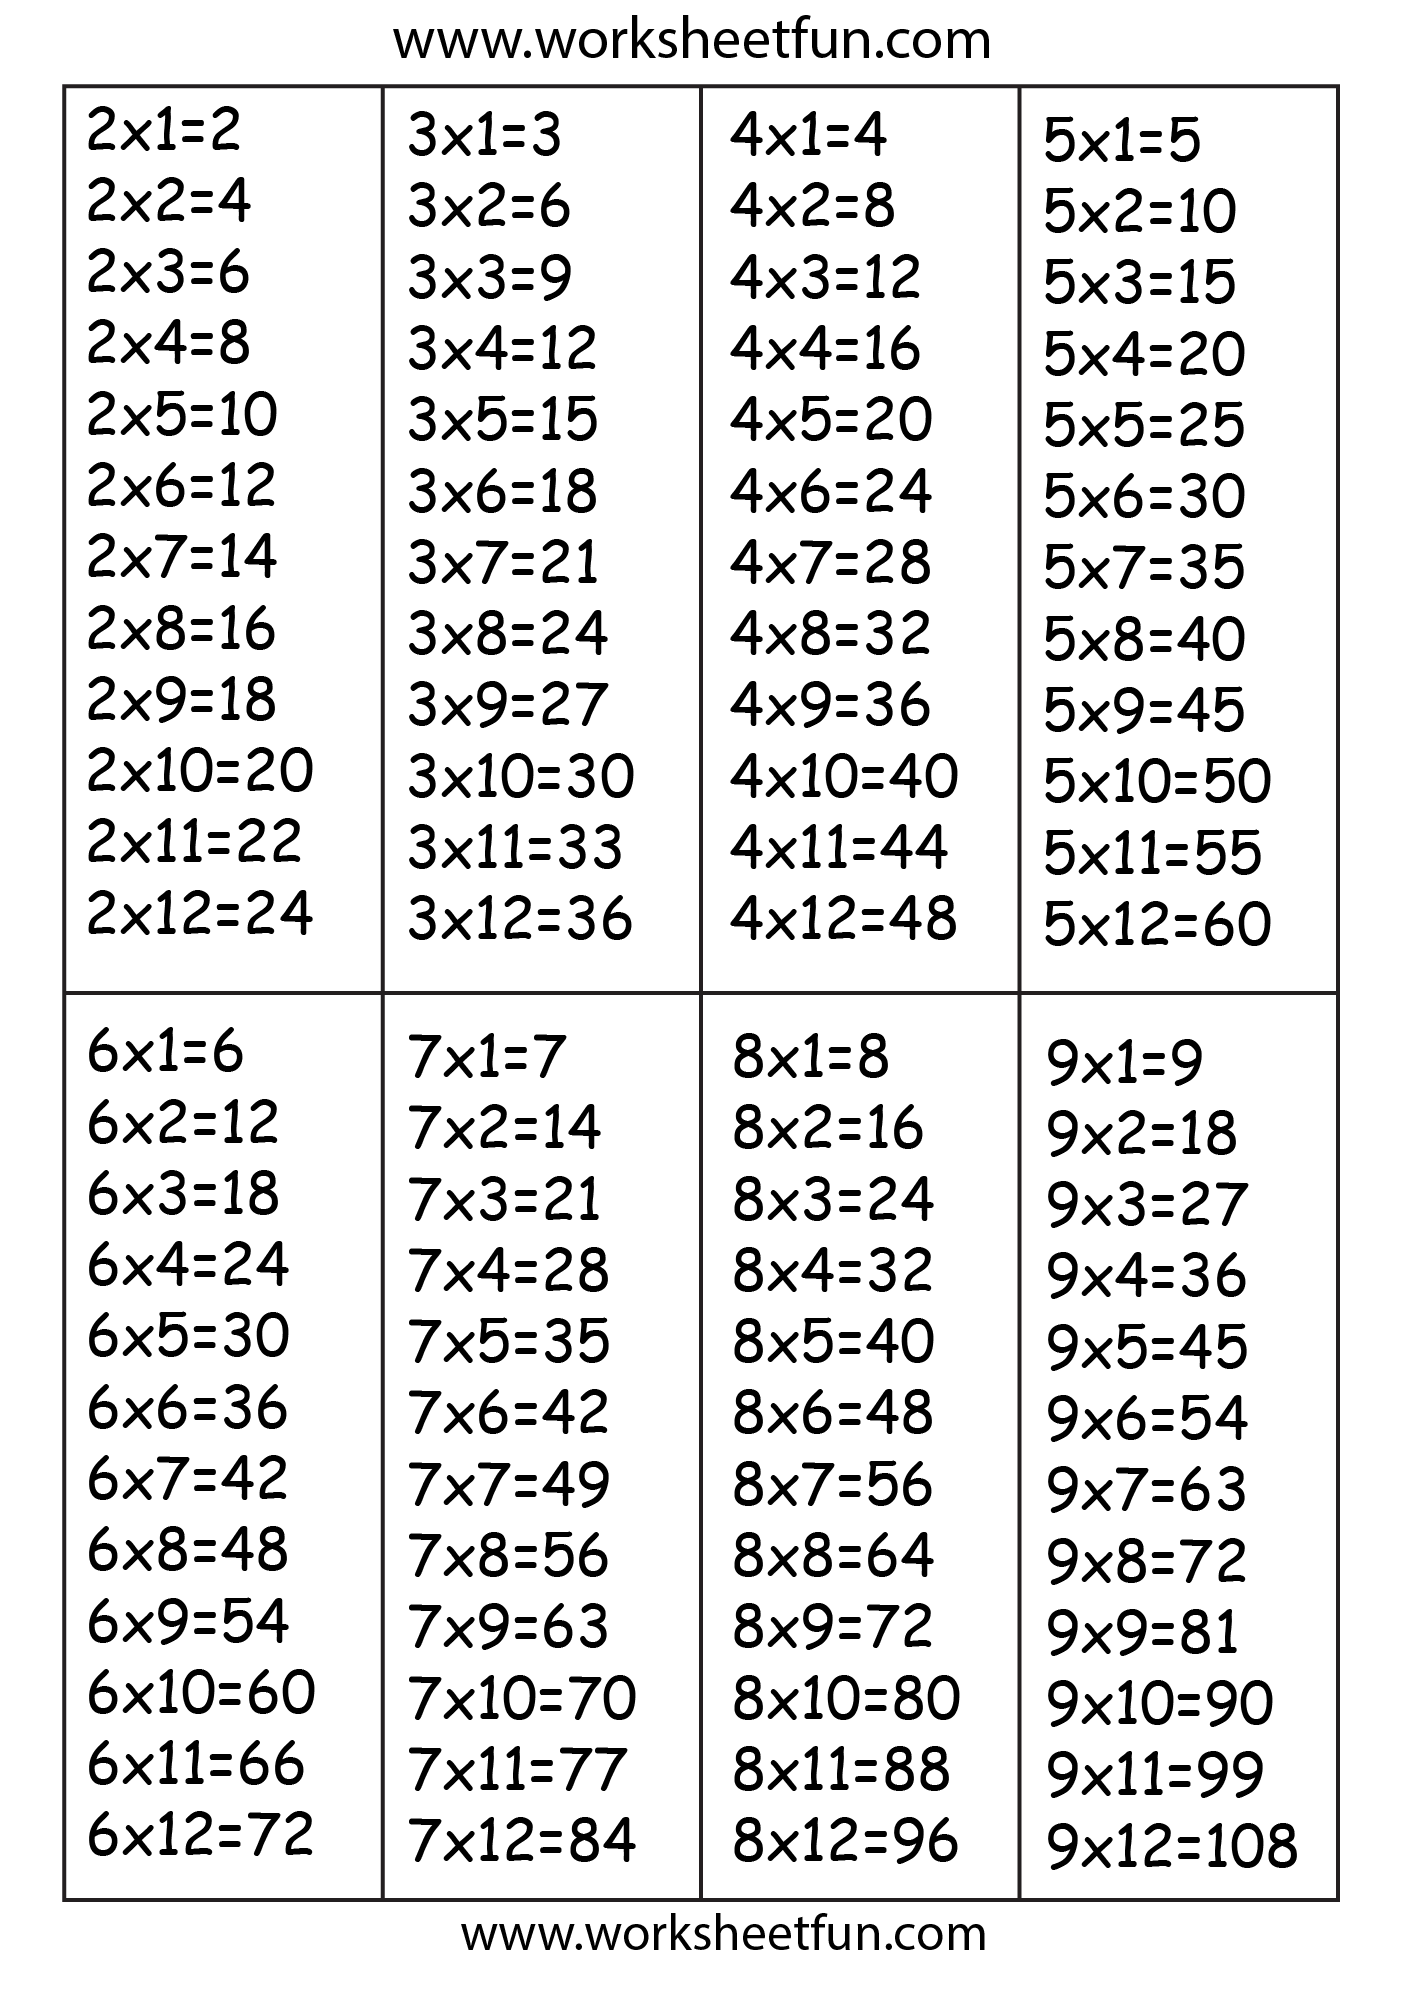 Worksheet Printable Times Table Worksheets times tables free printable worksheets worksheetfun table chart 2 3 4 5 6 7